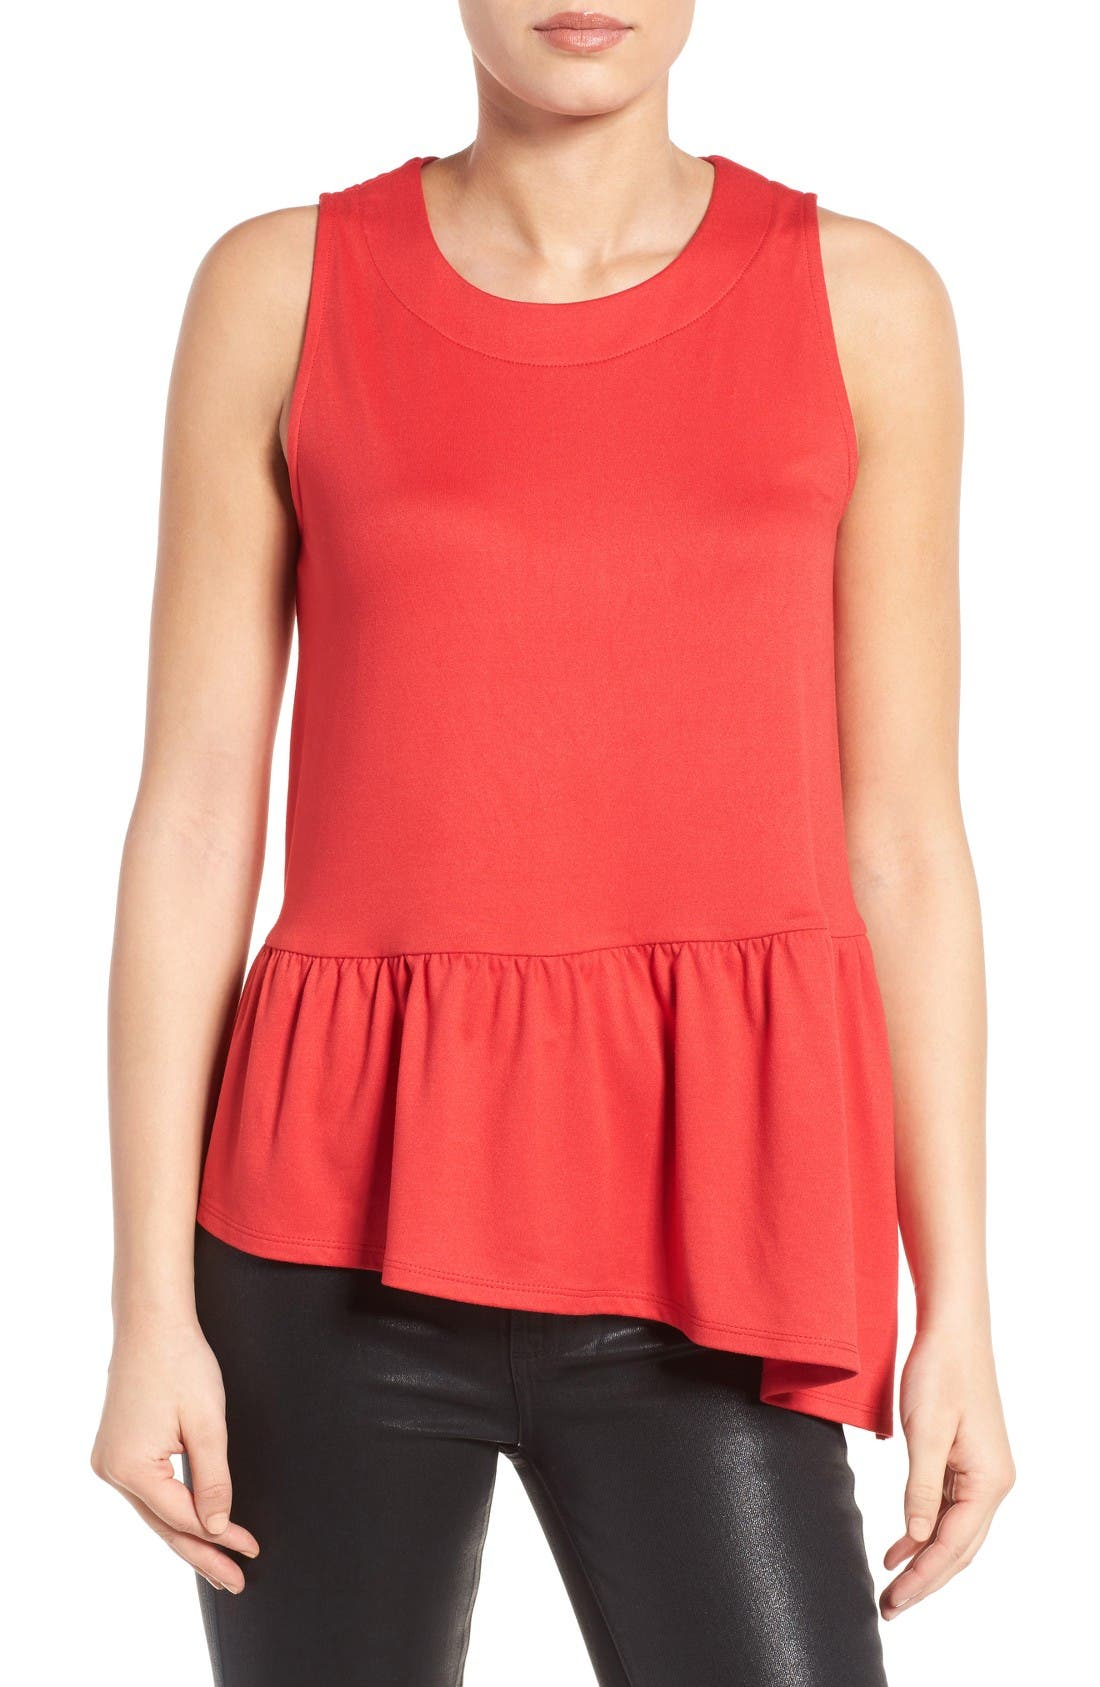 Main Image - Gibson Asymmetrical Ruffle Hem Top (Regular & Petite)